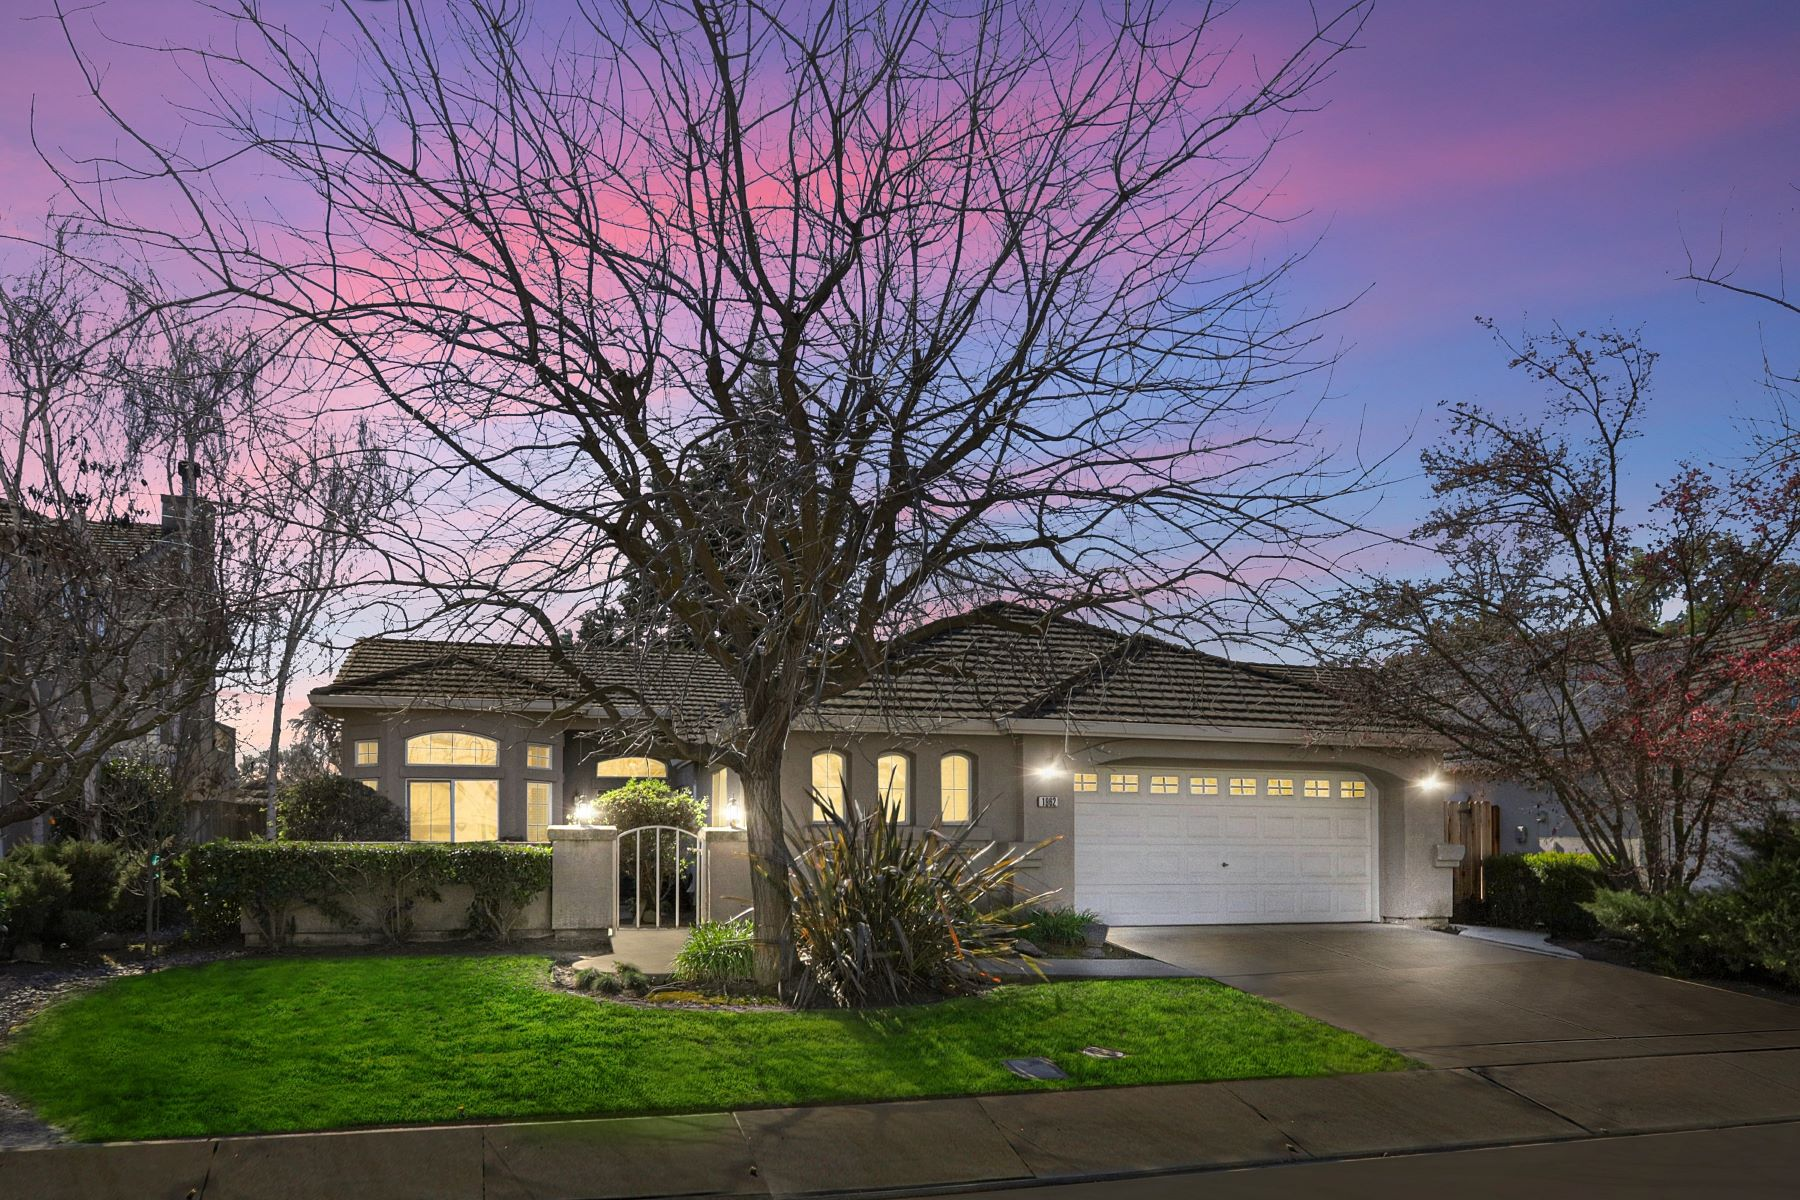 Single Family Homes for Sale at Immaculate Contemporary 1962 Gerber Drive Stockton, California 95209 United States